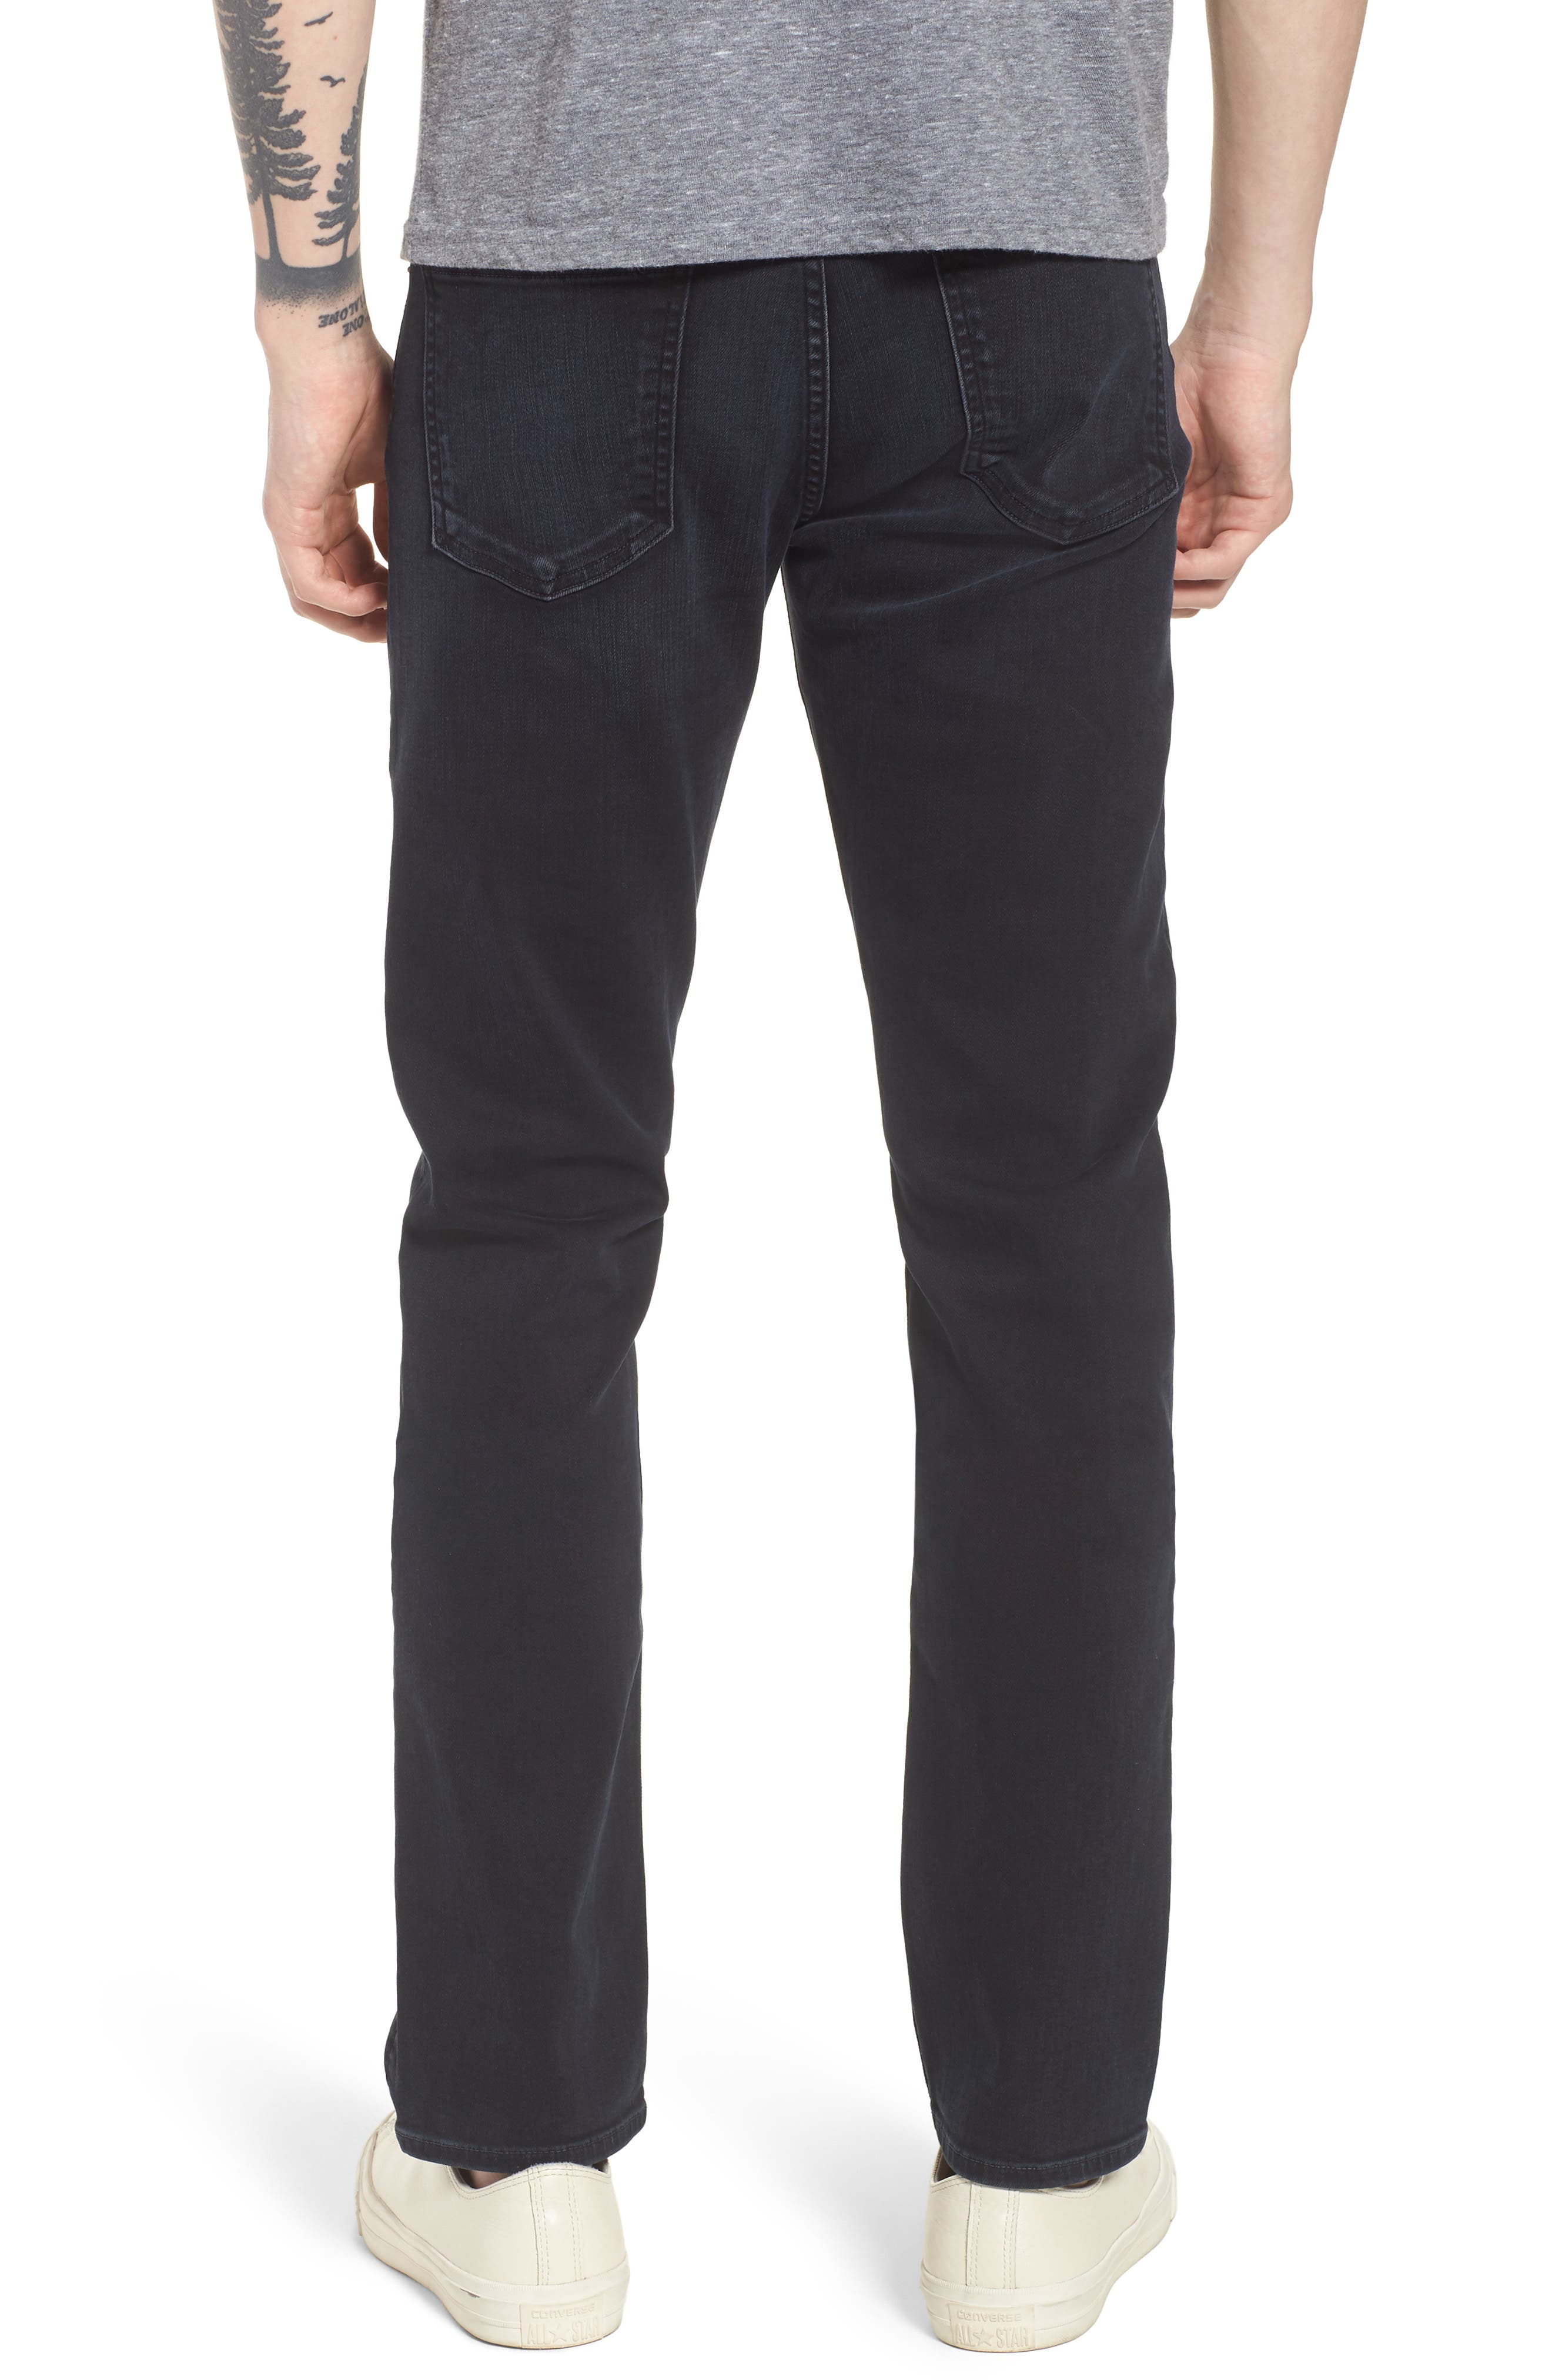 Bowery Slim Fit Jeans,                             Alternate thumbnail 2, color,                             483